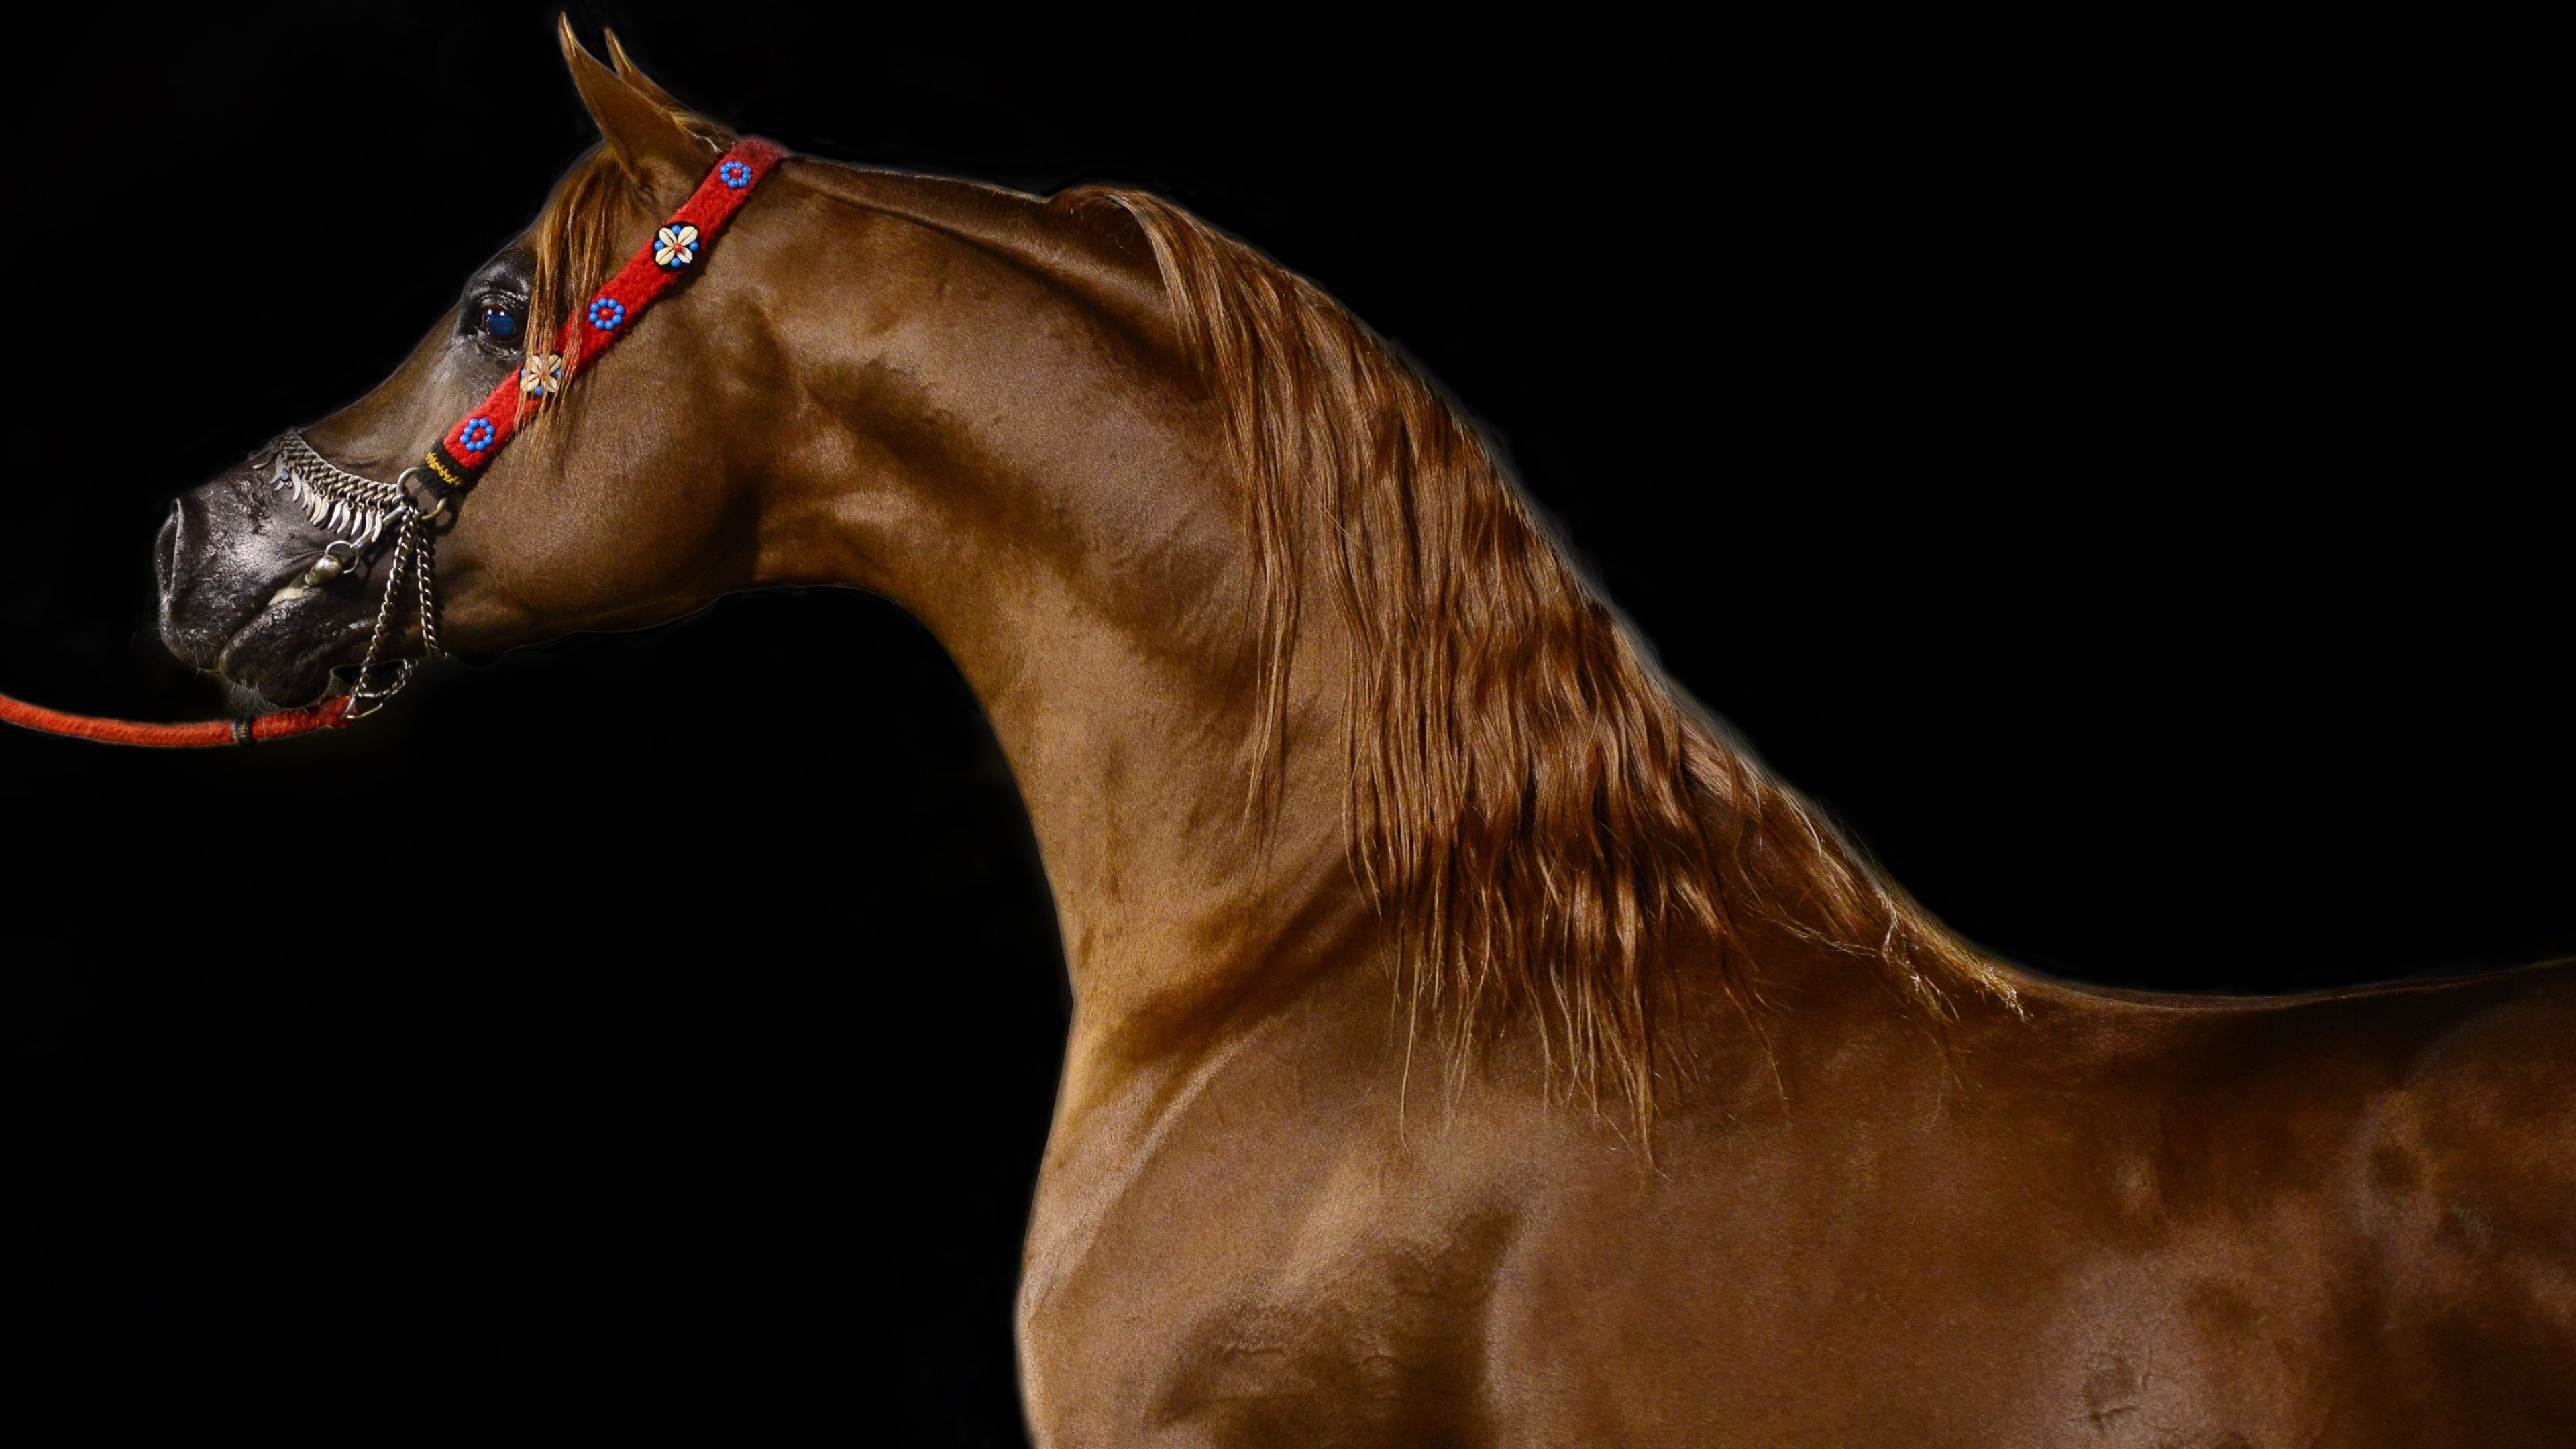 3840x2160 Arabian Horse Wallpapers | Android | Pinterest | Horse wallpaper .